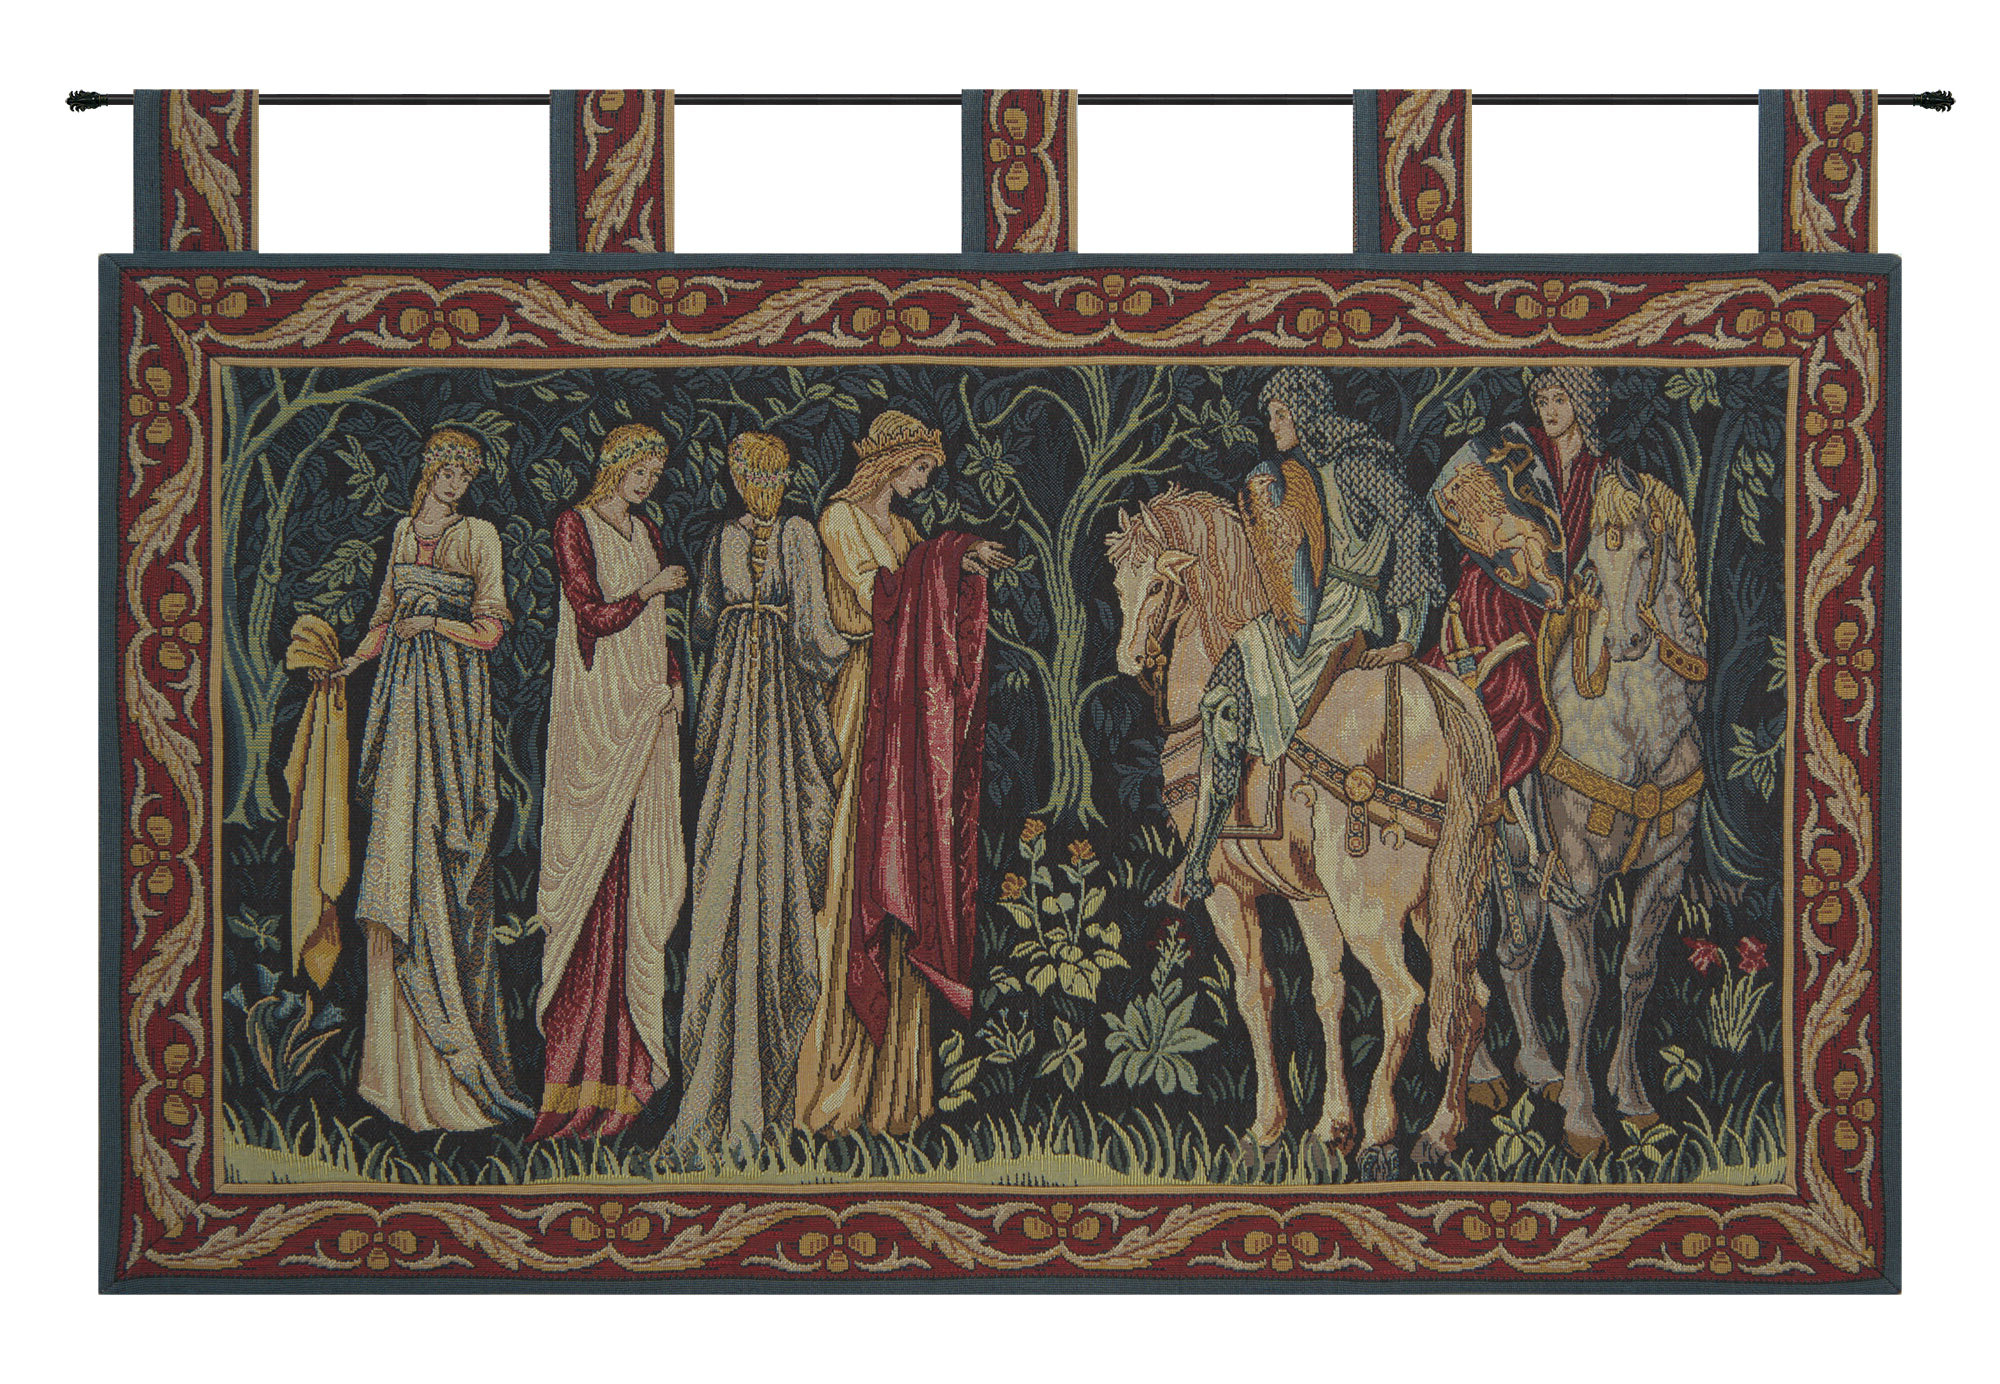 Blended Fabric Knight And Ladies Of Camelot With Loops Tapestry Intended For Well Known Blended Fabric In His Tapestries And Wall Hangings (View 4 of 20)